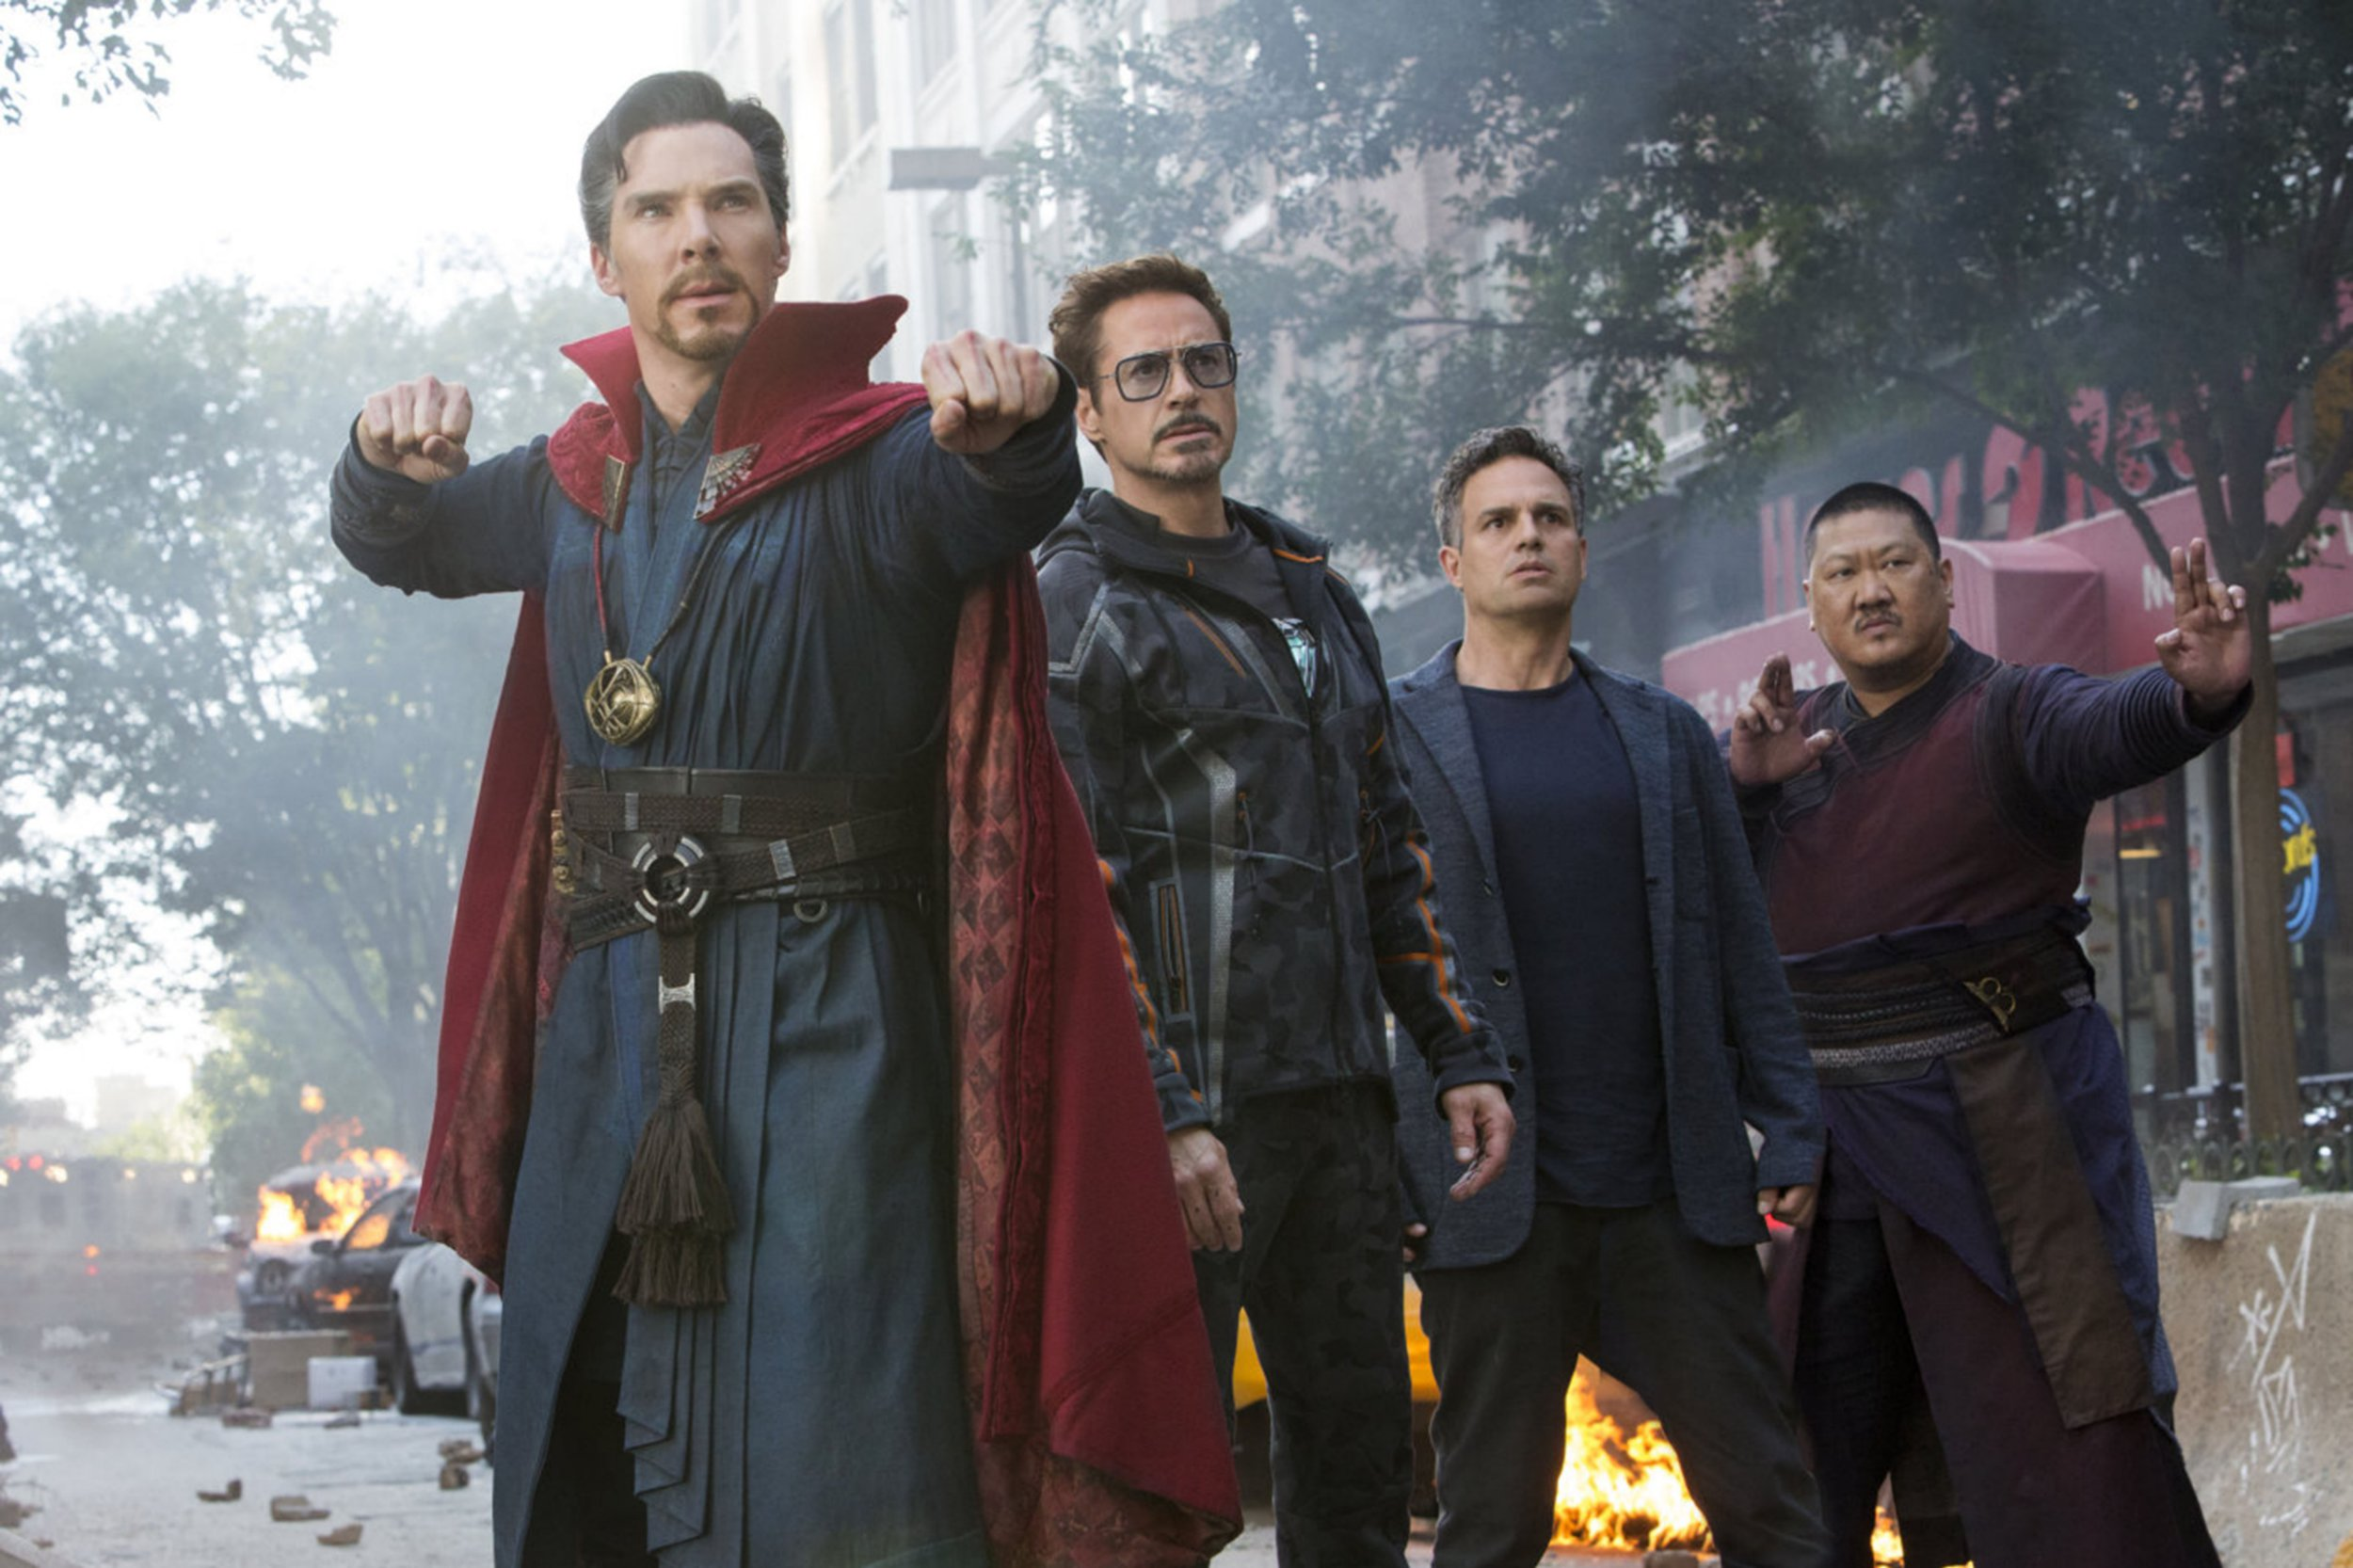 where to watch, download and stream avengers infinity war ahead of